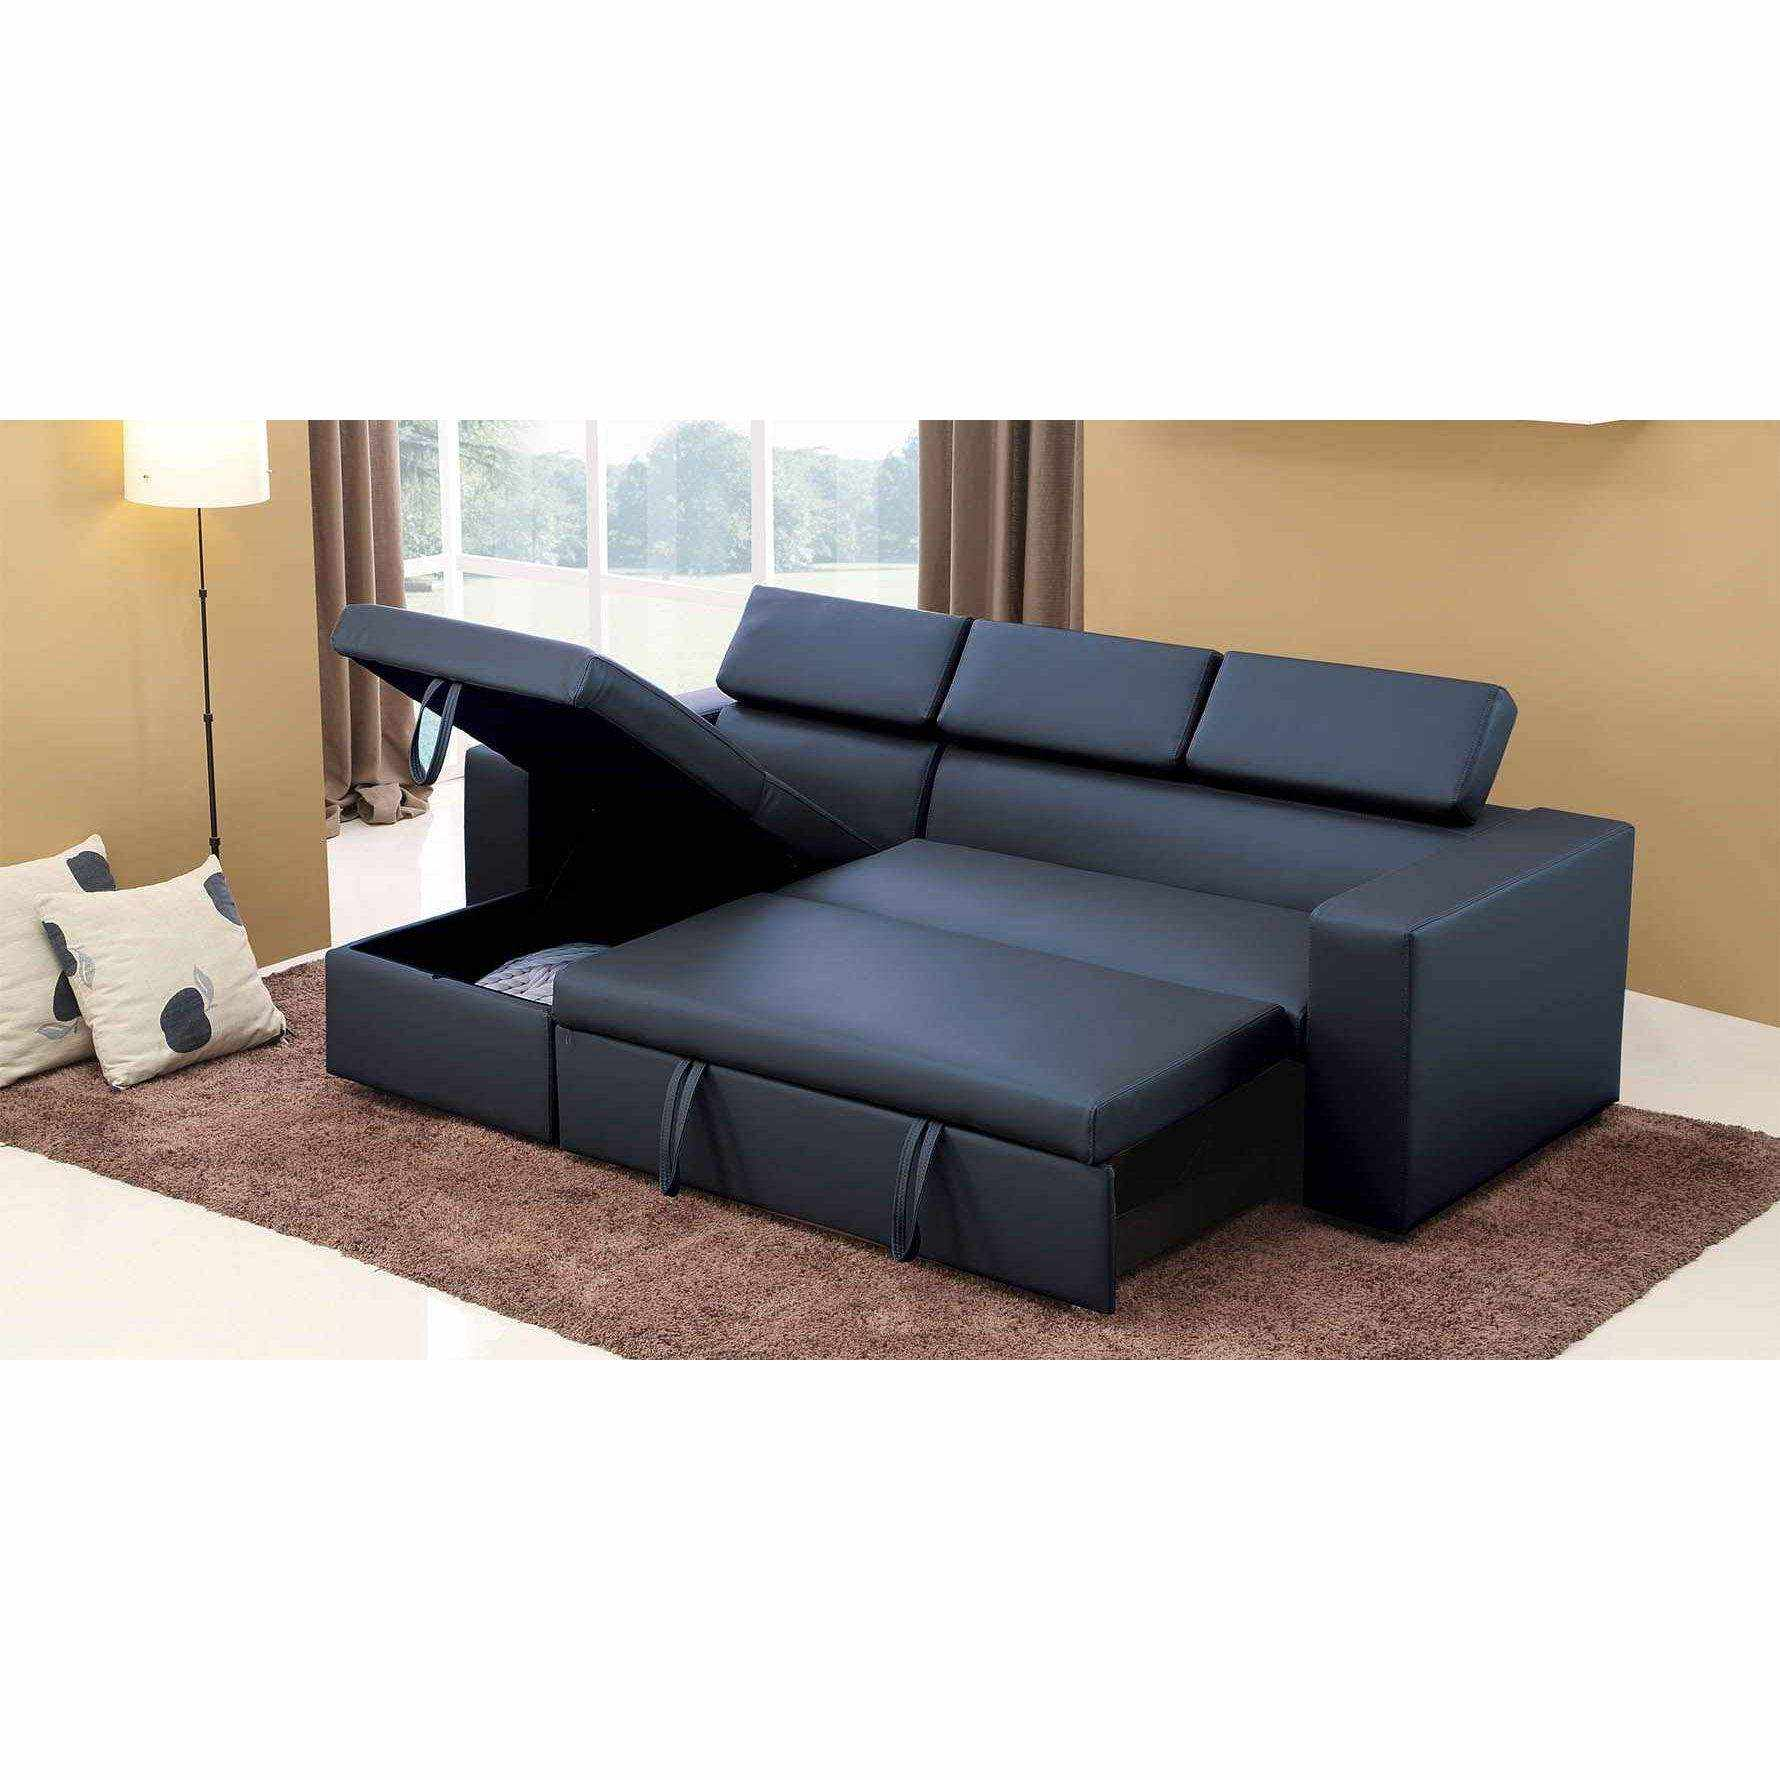 Canape d angle modulable convertible maison design for Canape modulable